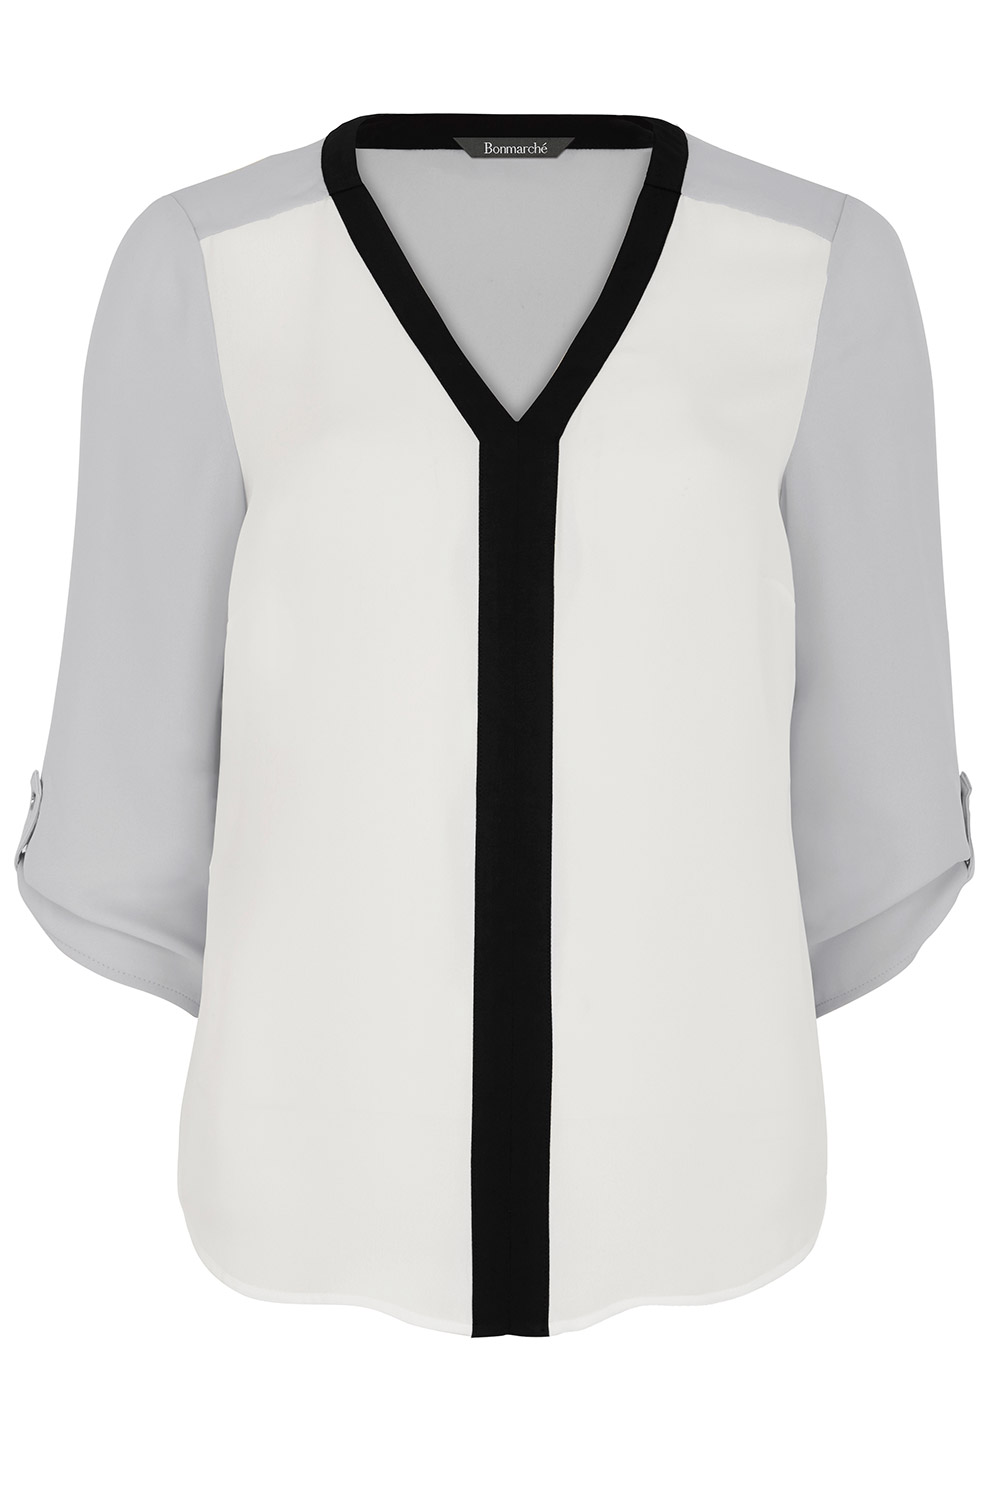 b3d42f10201f Colour Block Blouse